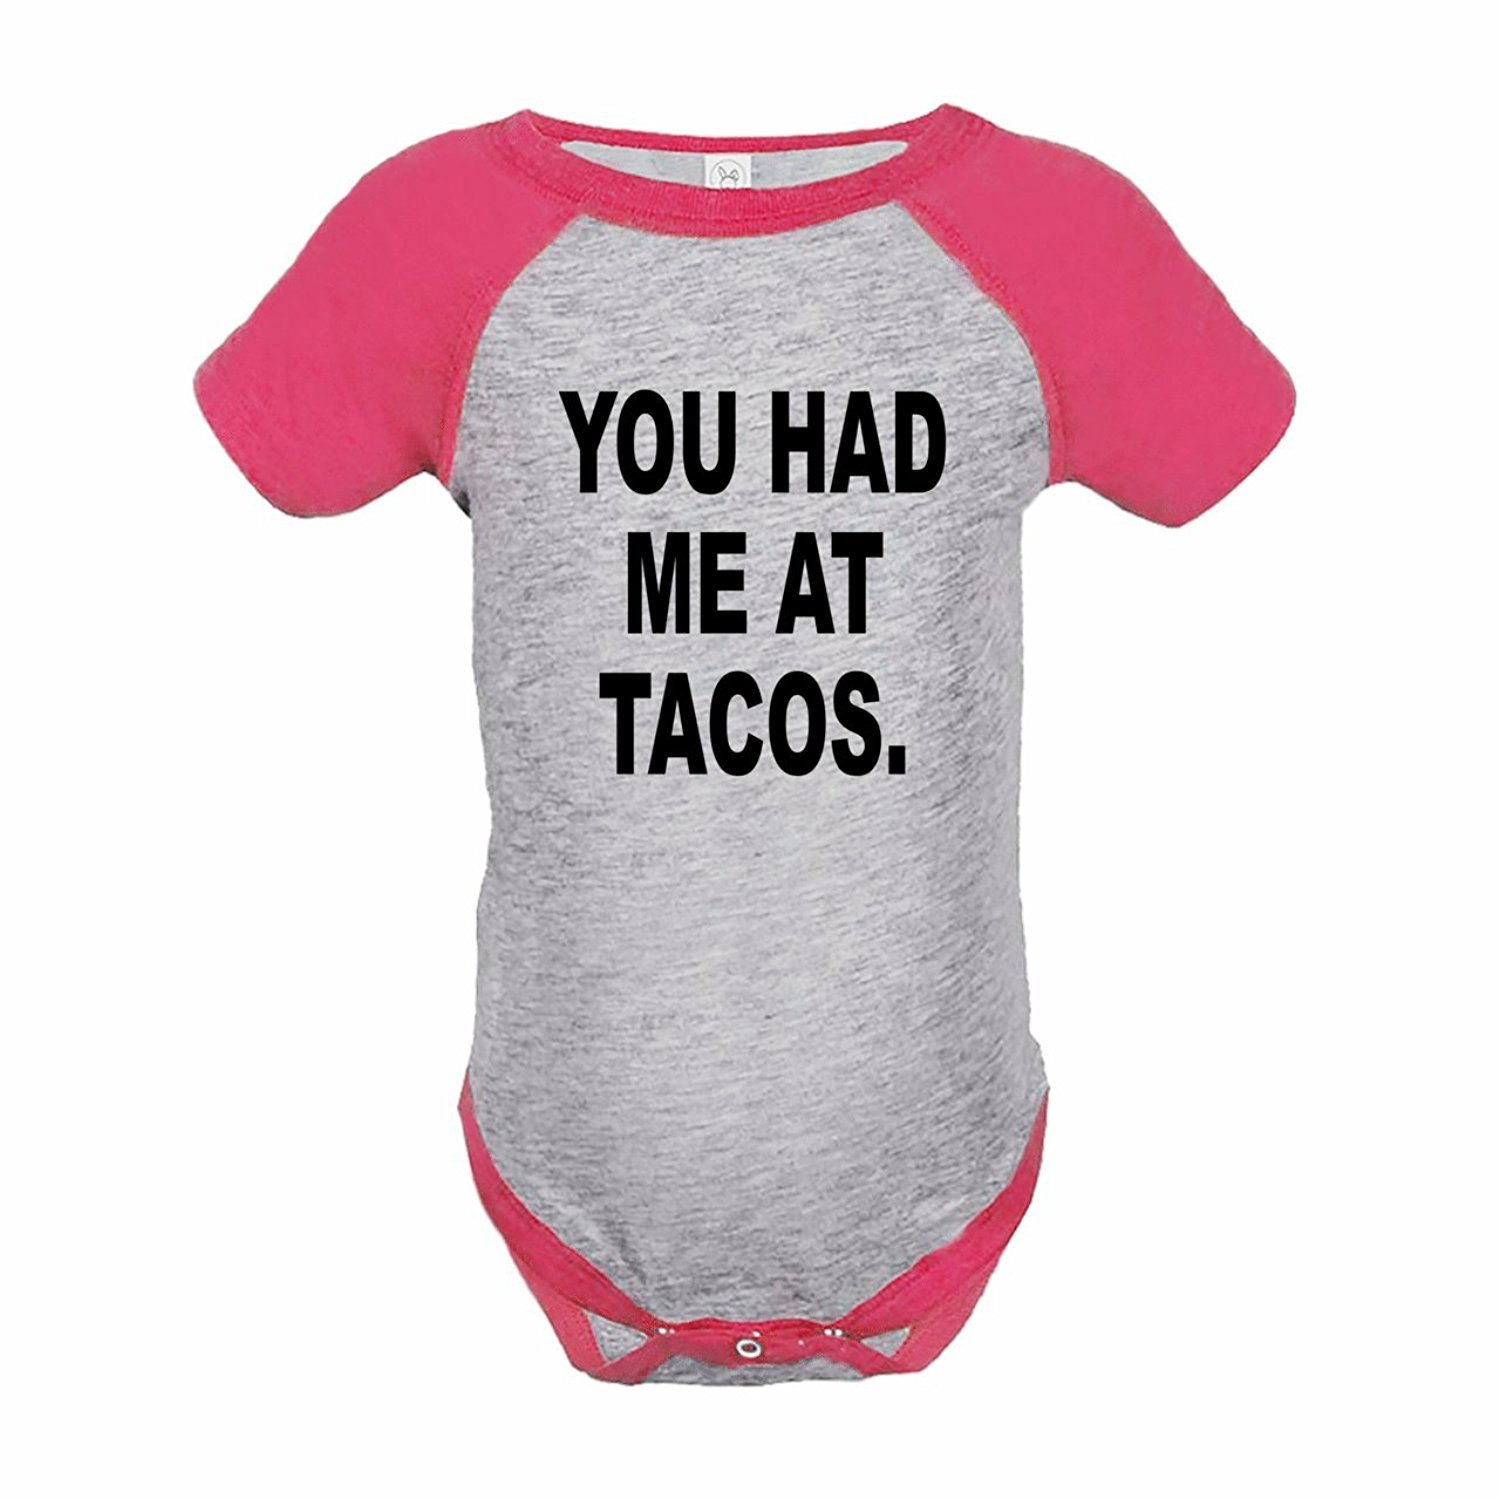 7 ate 9 Apparel Funny Kids You Had Me At Tacos Baseball Onepiece Pink - 12 Months